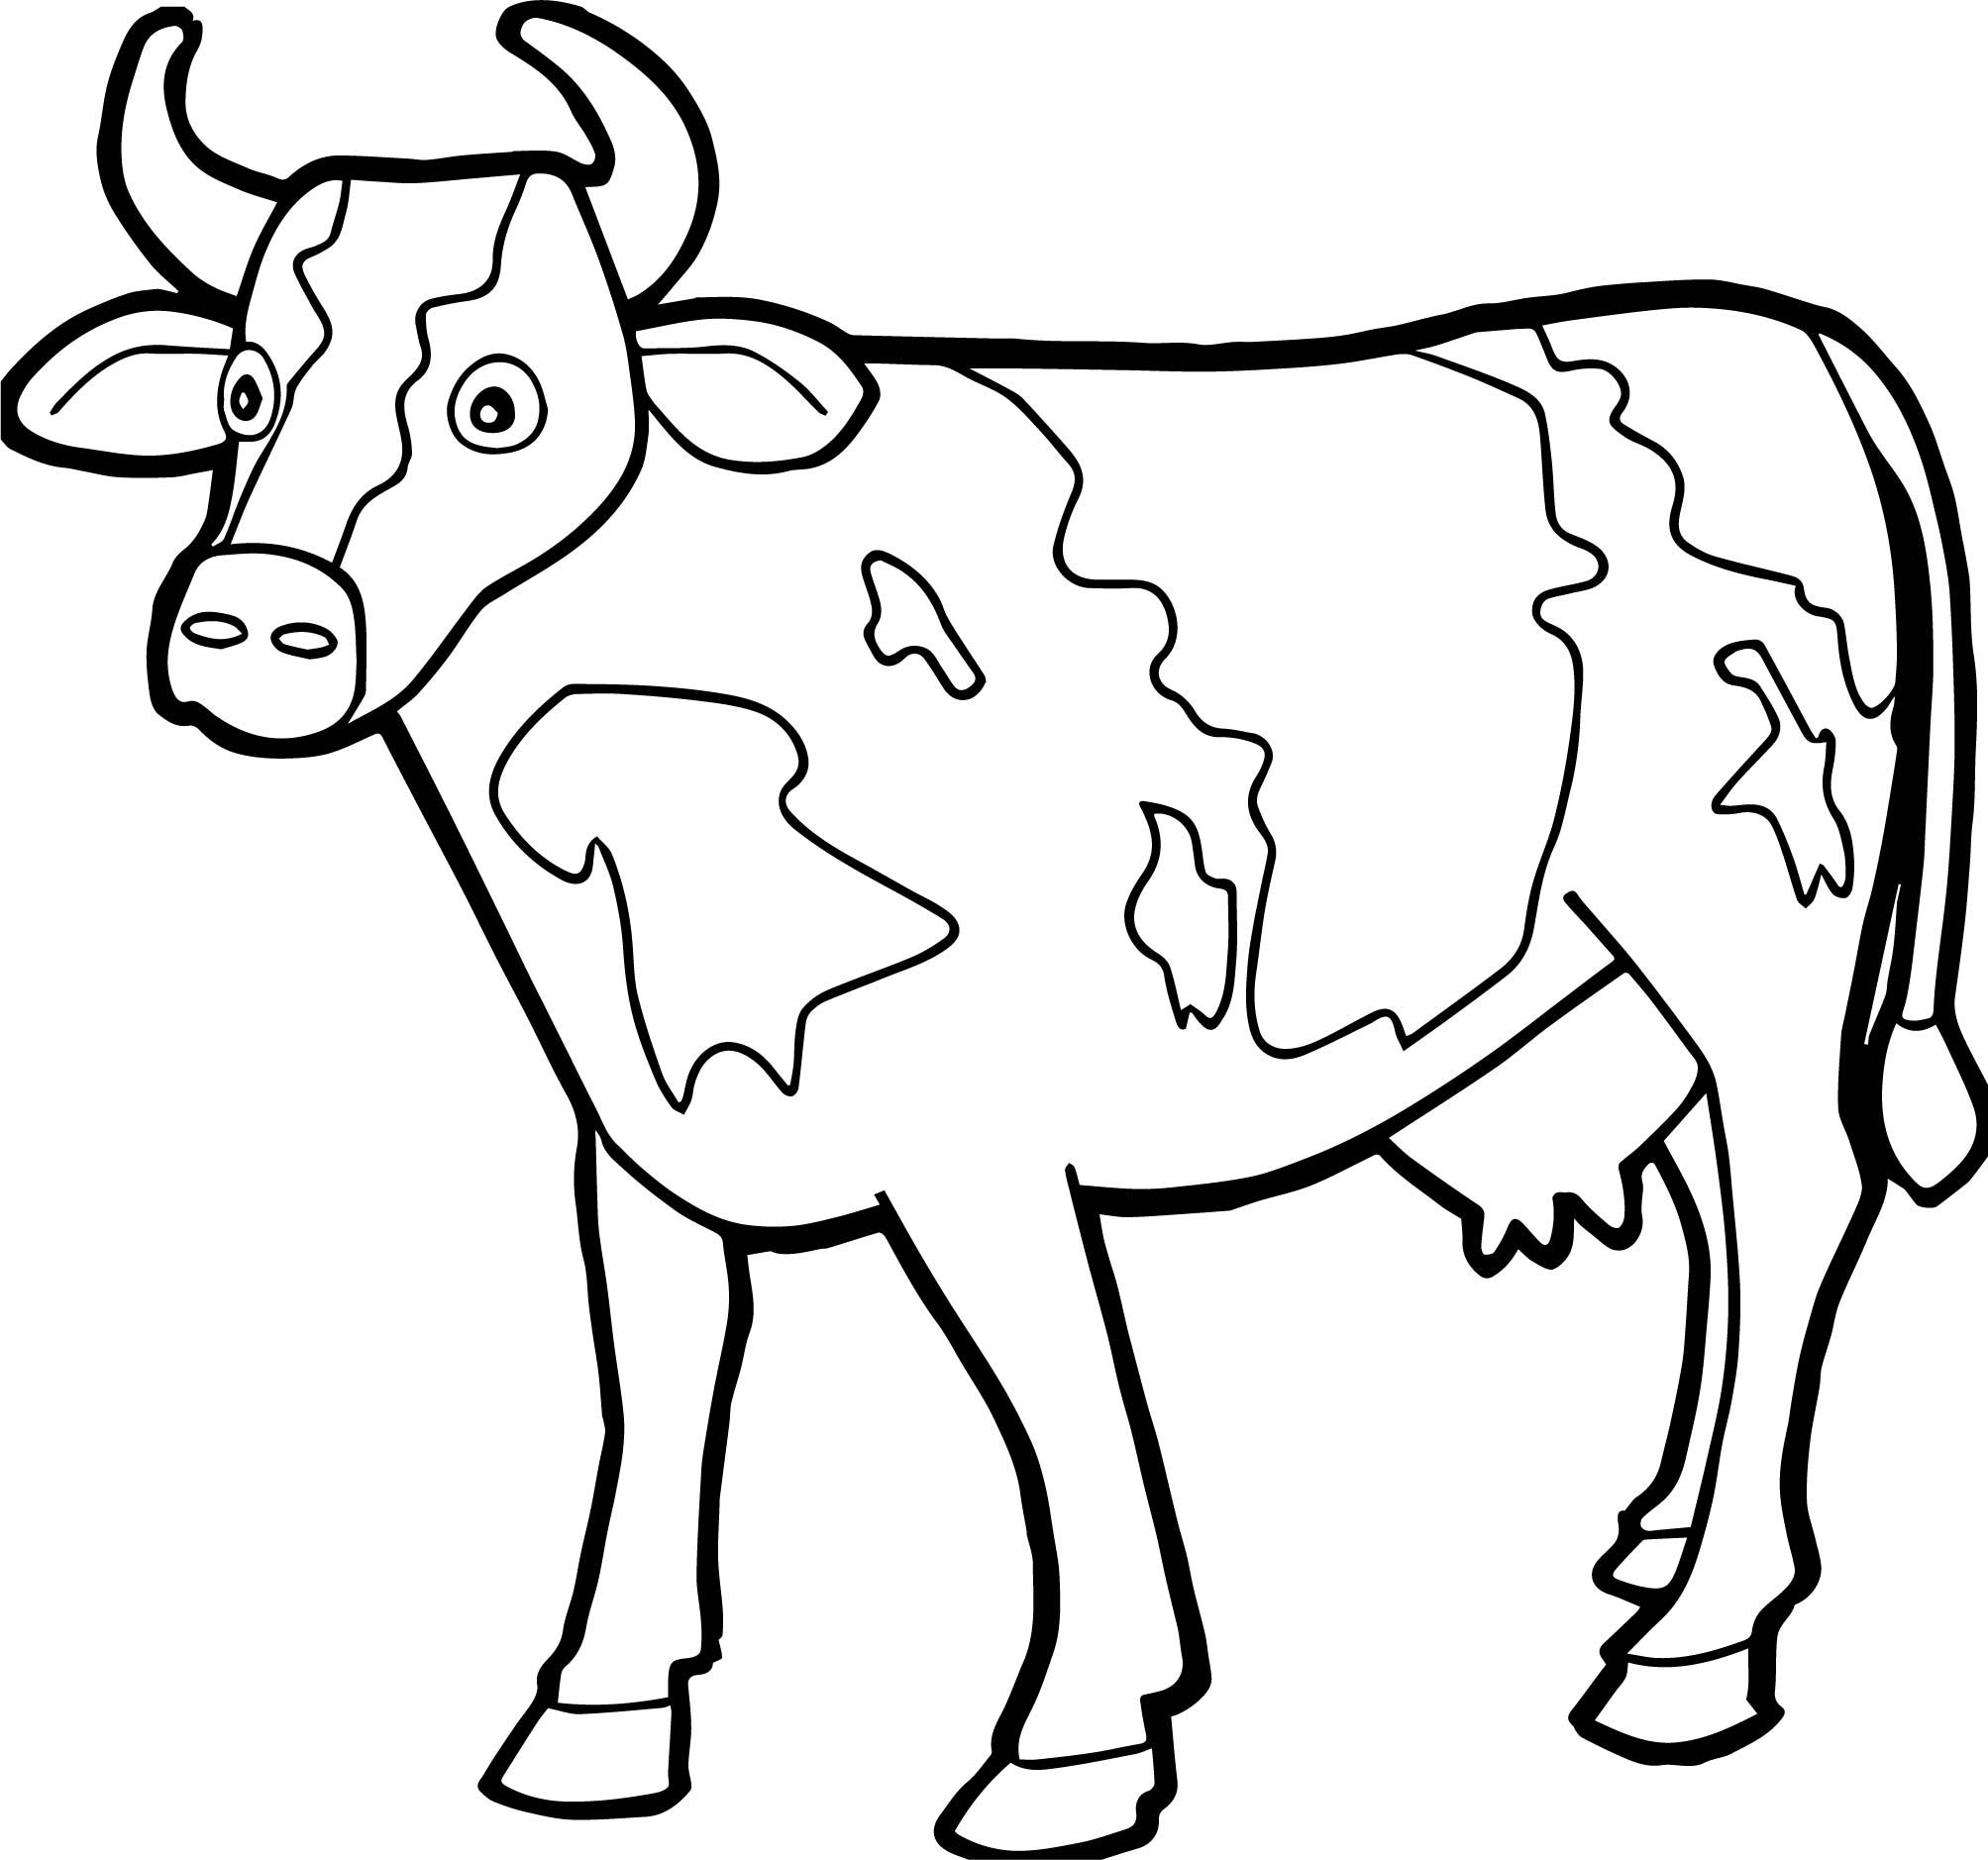 Nice Farm Animal Staying Cow Coloring Page Cow Coloring Pages